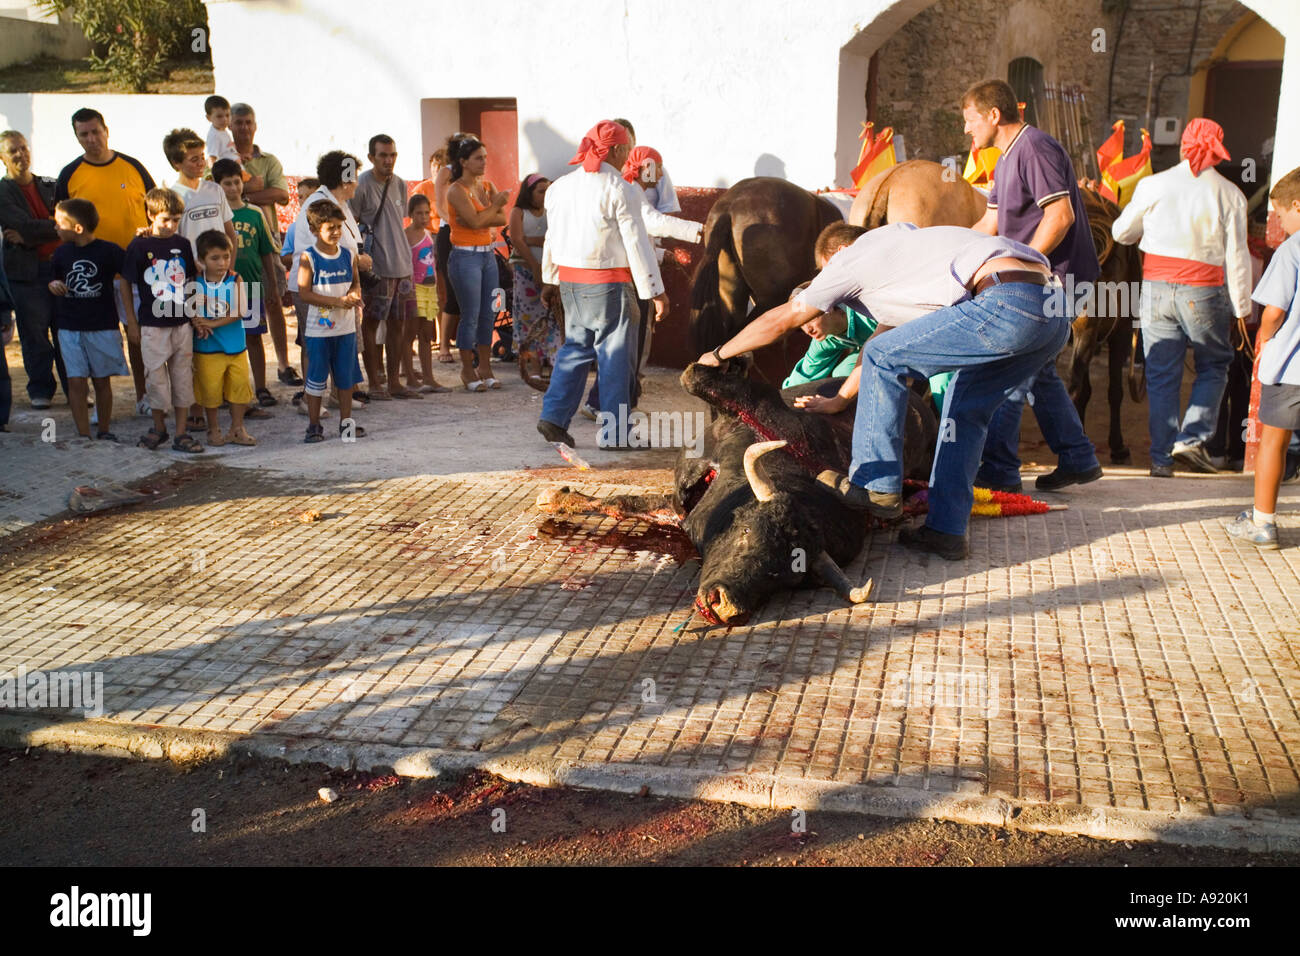 dead bull taken from bullring with blood on the pavement with horrified and fascinated spectators and children watching - Stock Image